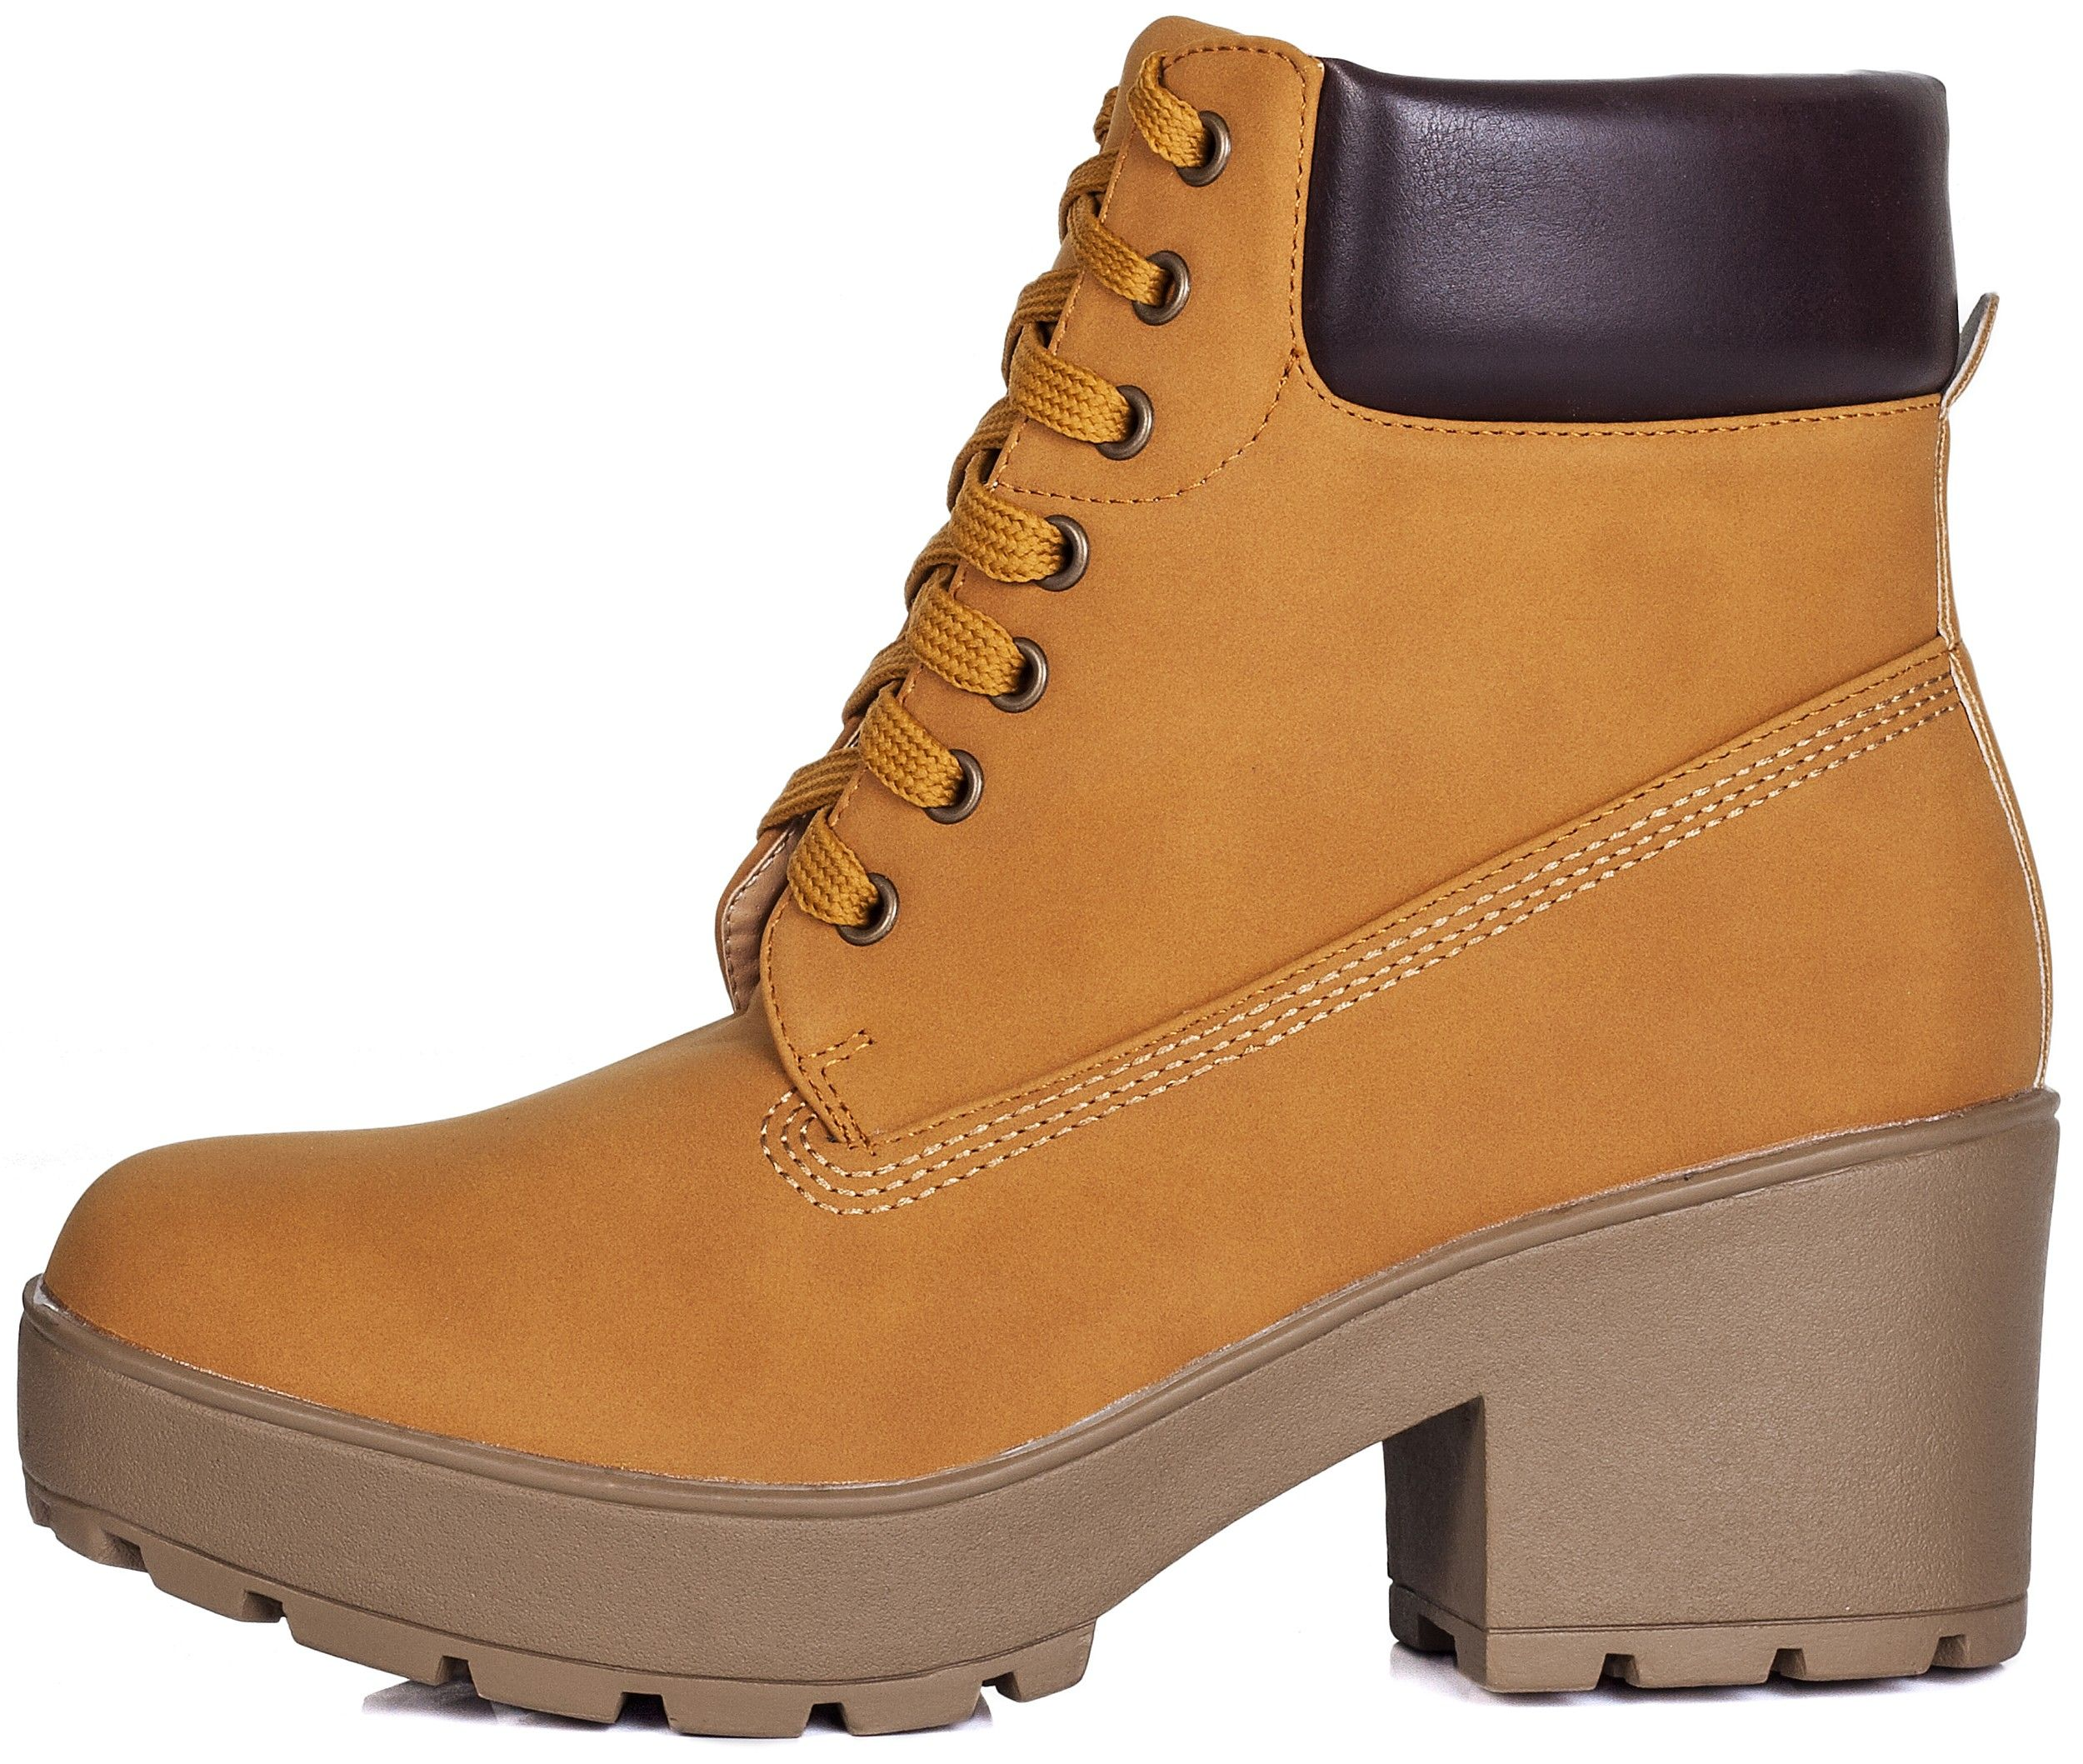 Quth Dresses Women's Work Boots